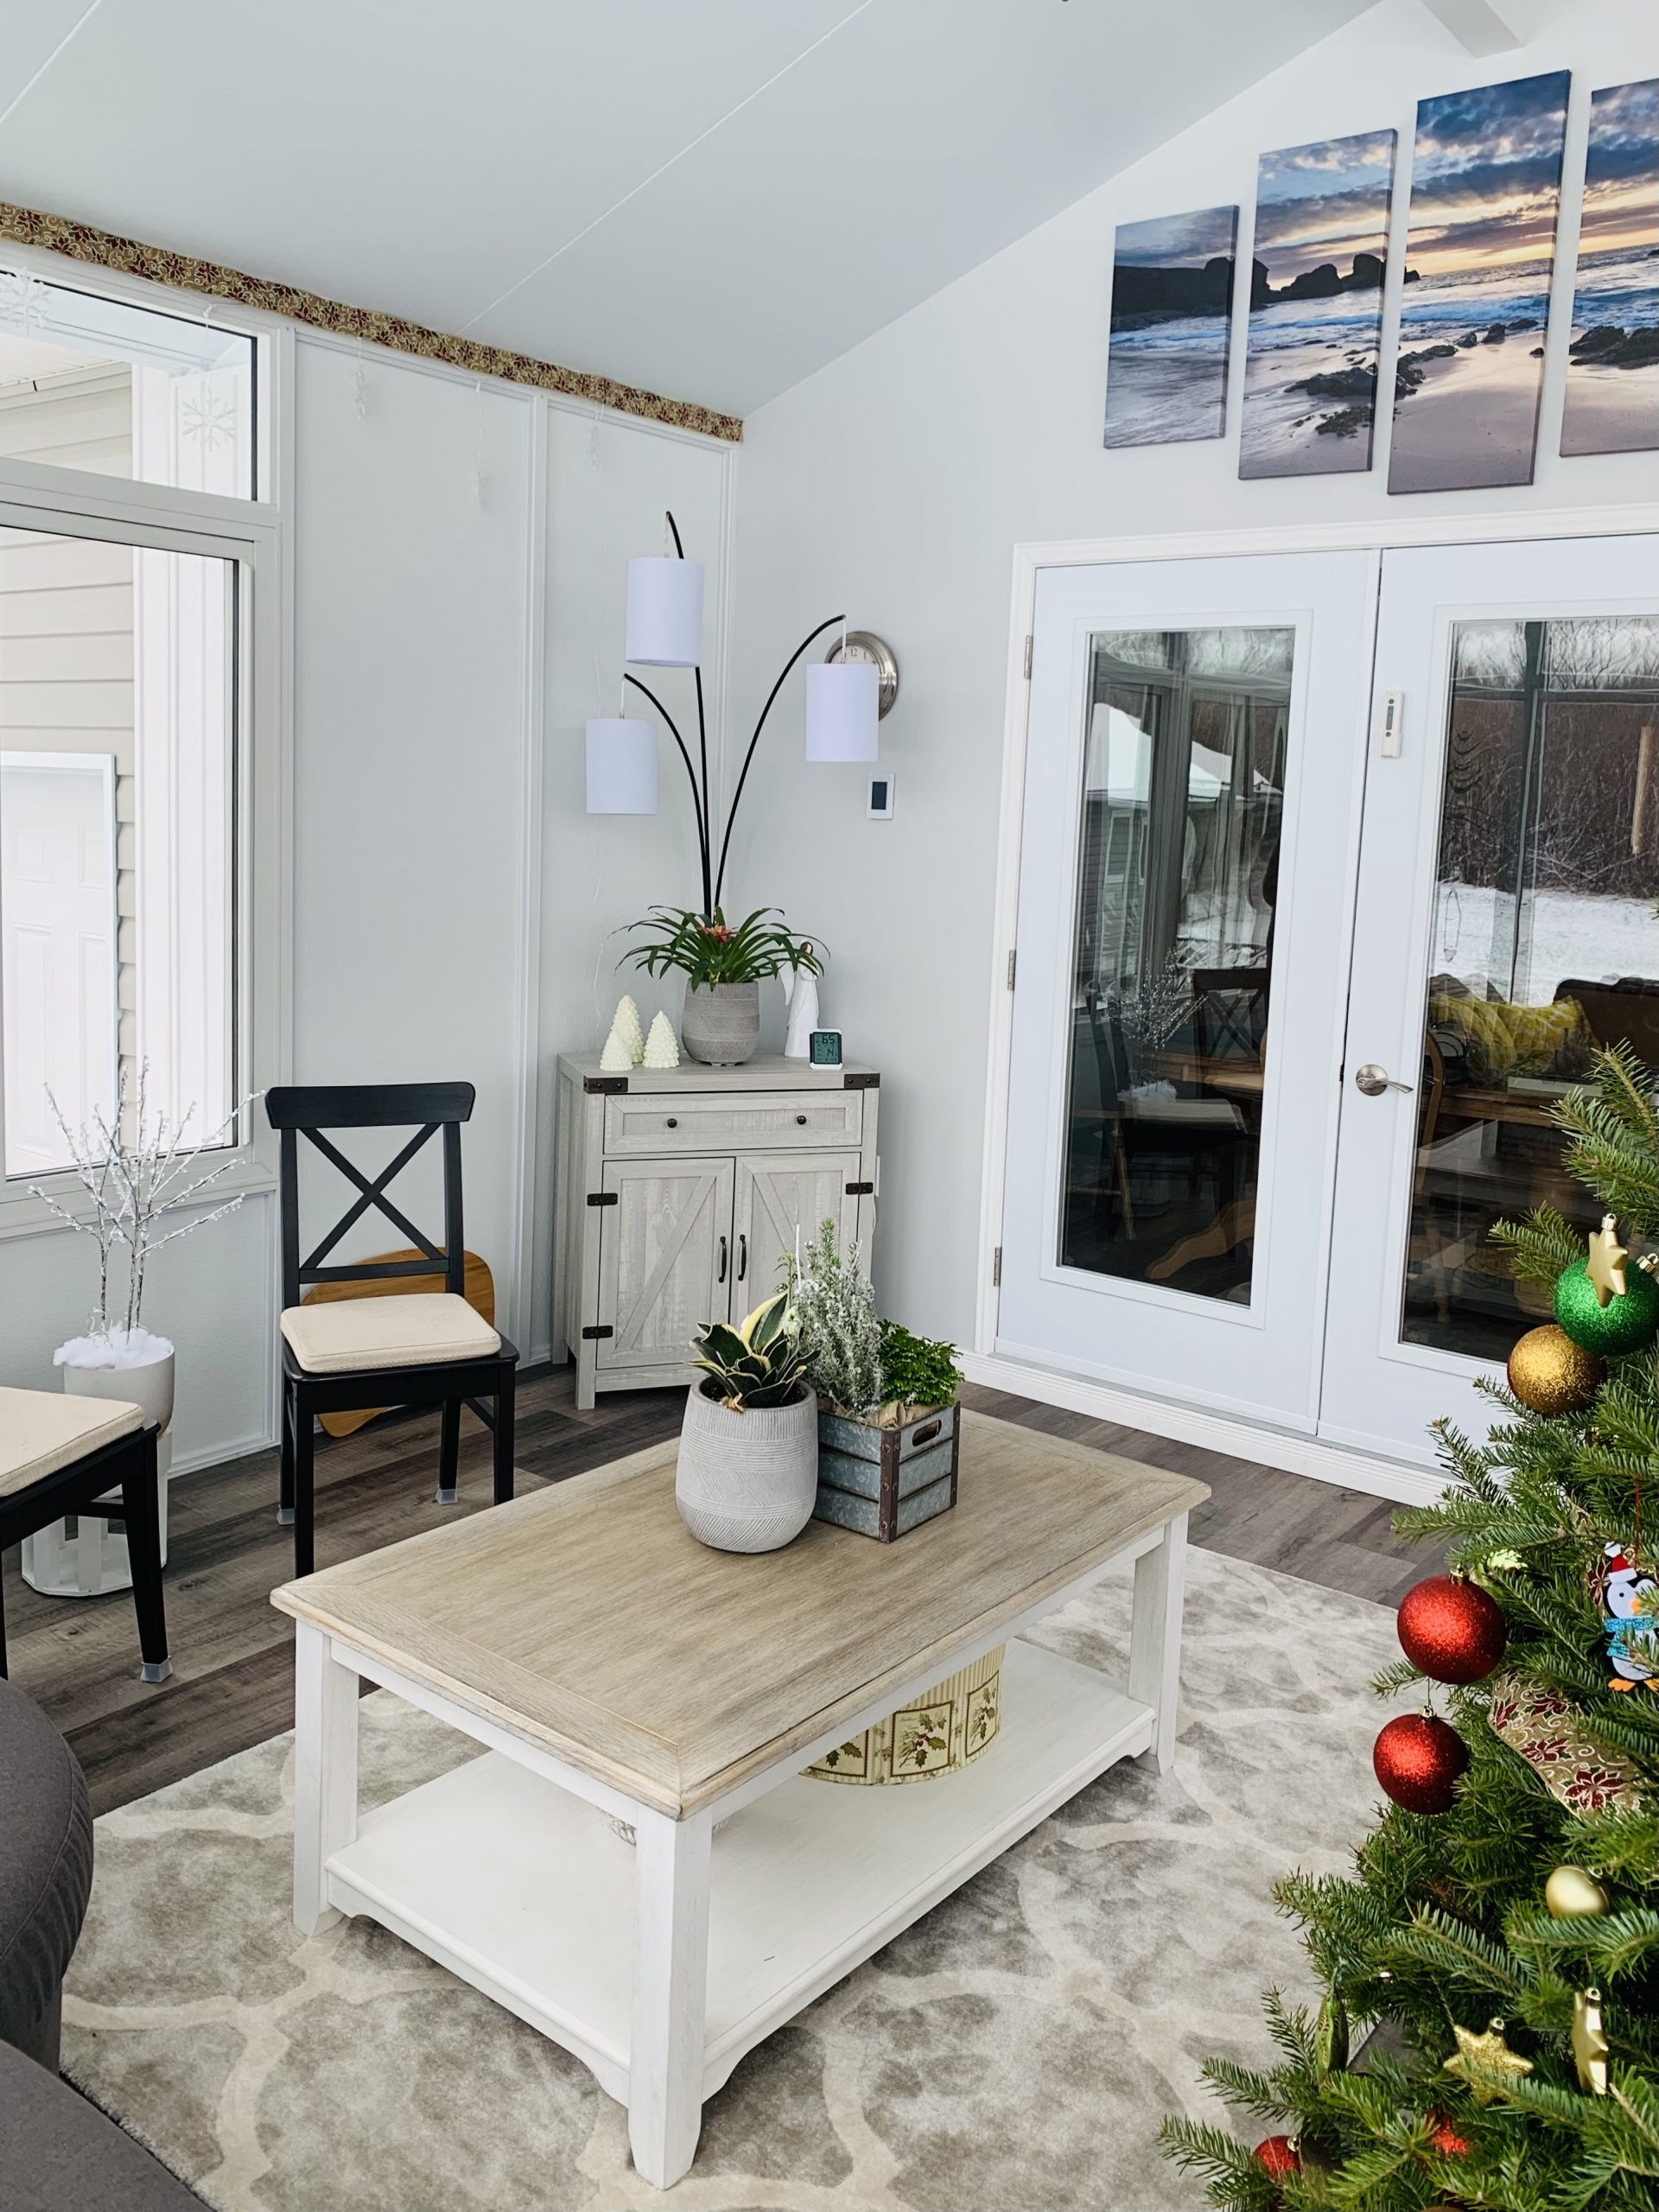 inside 4 season sunroom winter